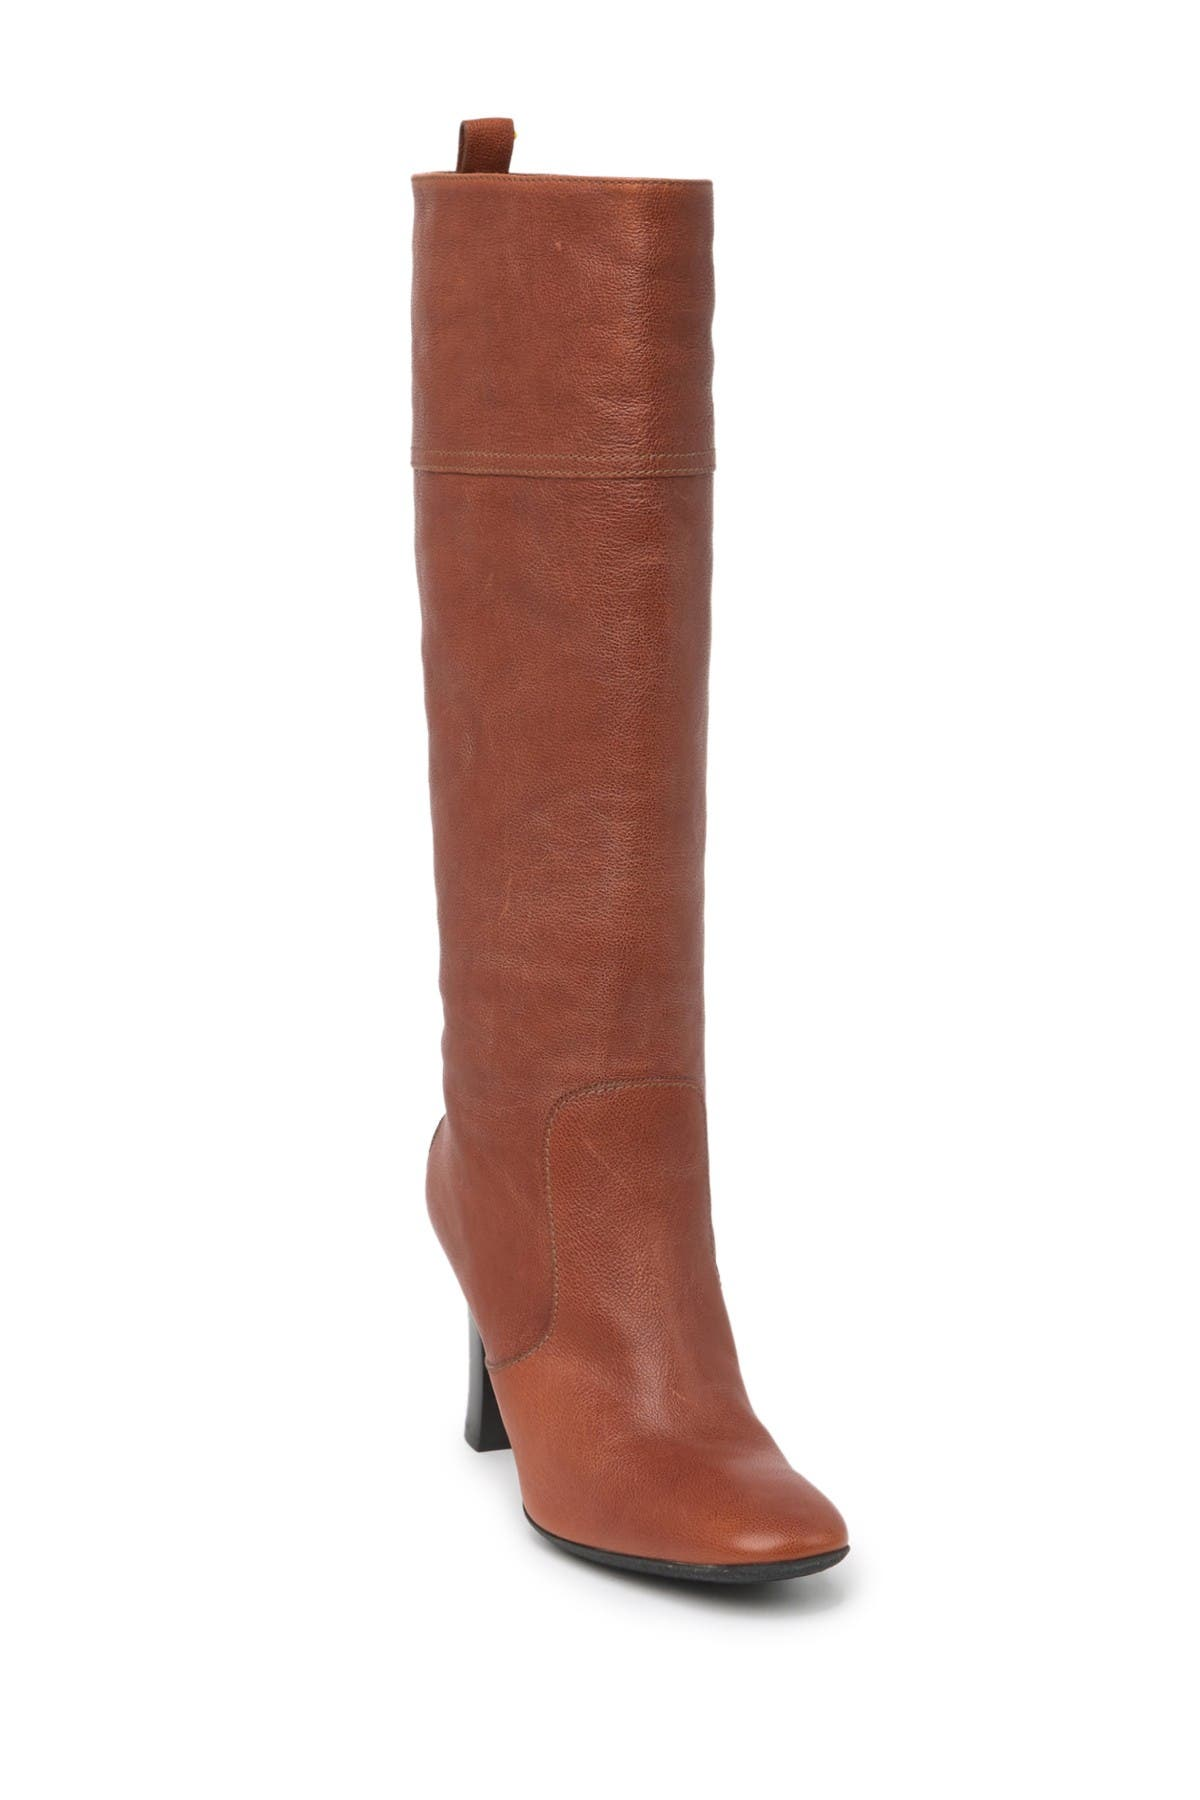 Image of Tod's Tall Leather Block Heel Boot